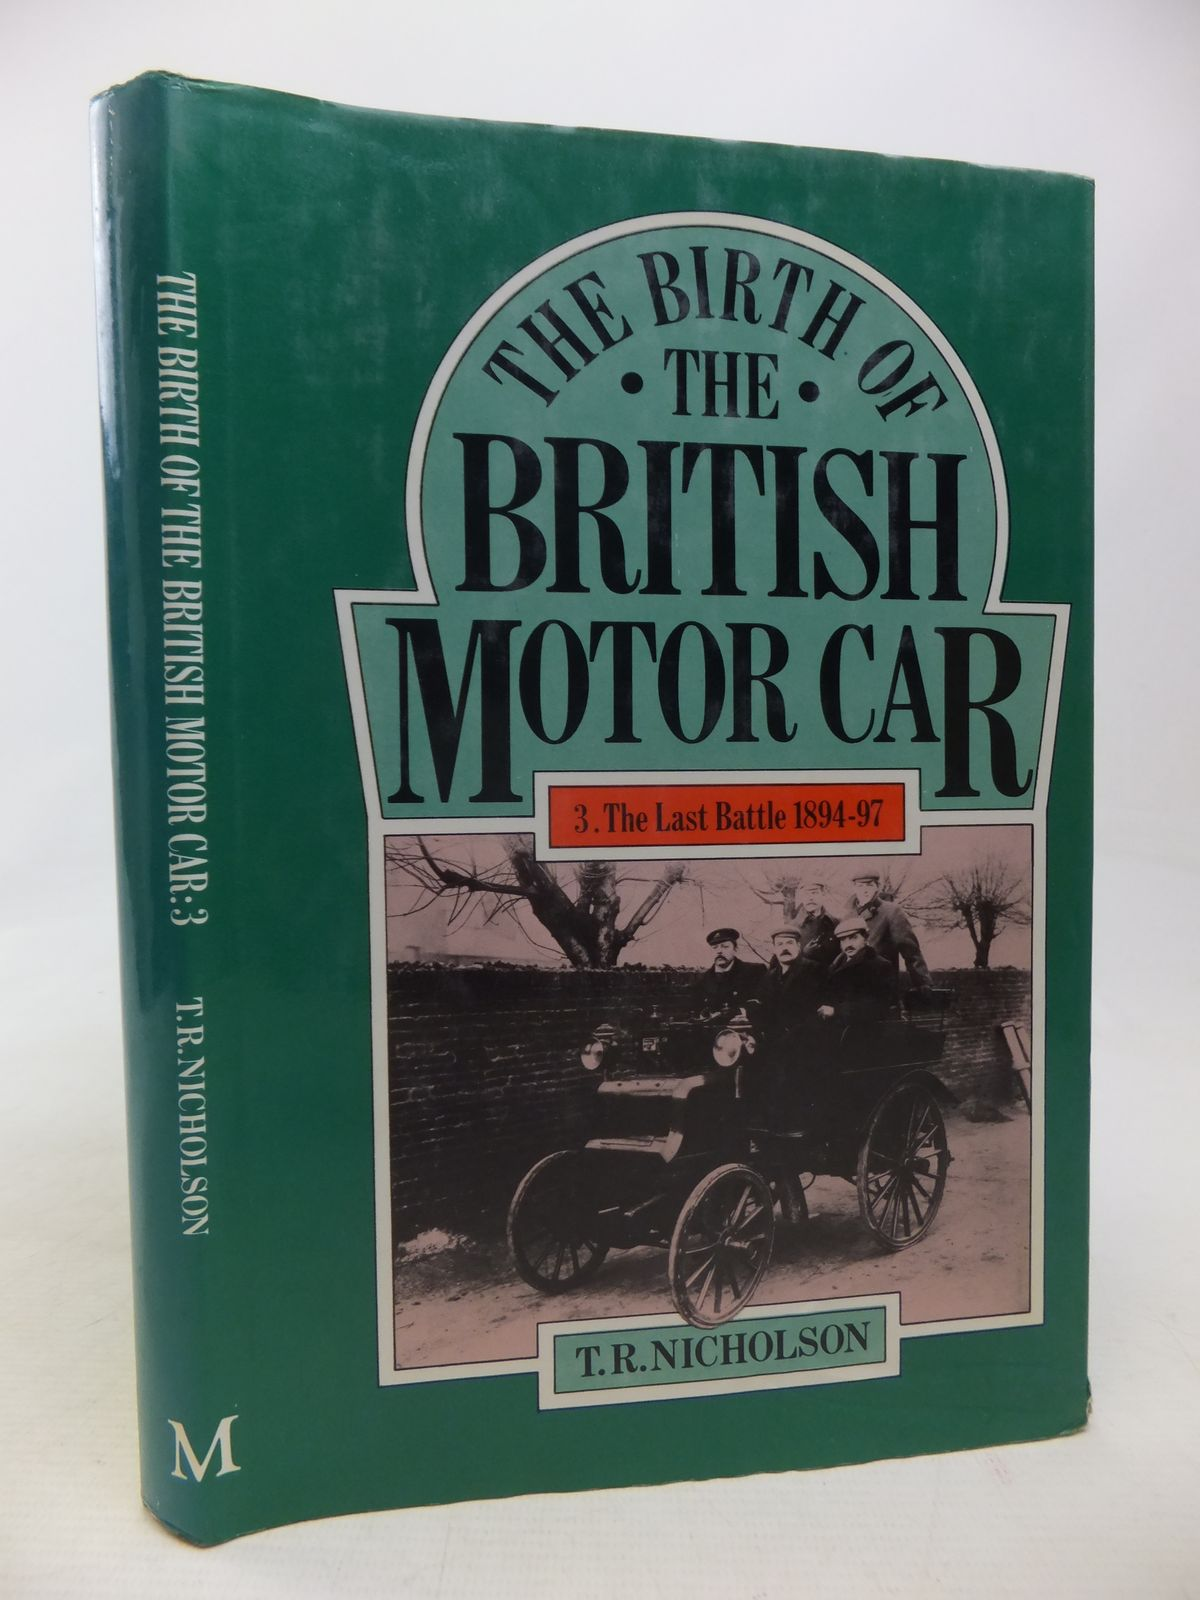 Photo of THE BIRTH OF THE BRITISH MOTOR CAR 1769-1897 VOLUME 3 THE LAST BATTLE 1894-97 written by Nicholson, T.R. published by MacMillan (STOCK CODE: 1809962)  for sale by Stella & Rose's Books